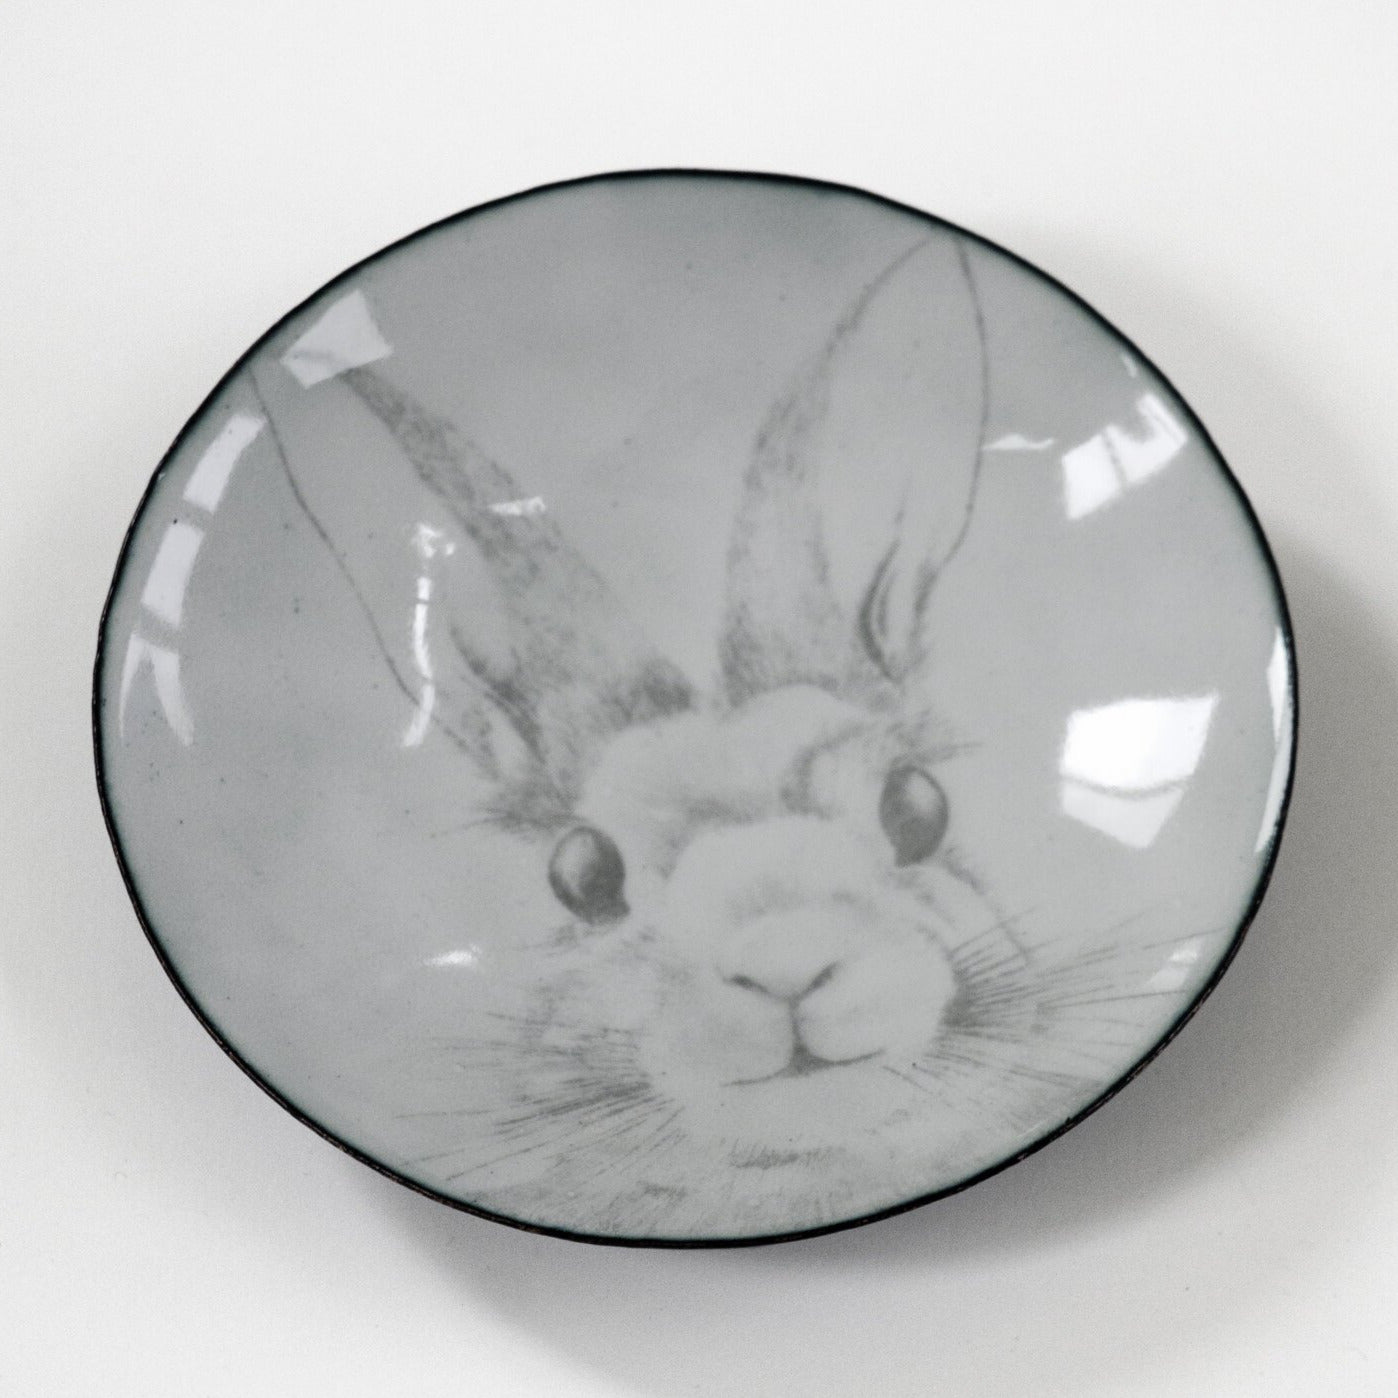 Bunny for your thoughts, enamelware bowl